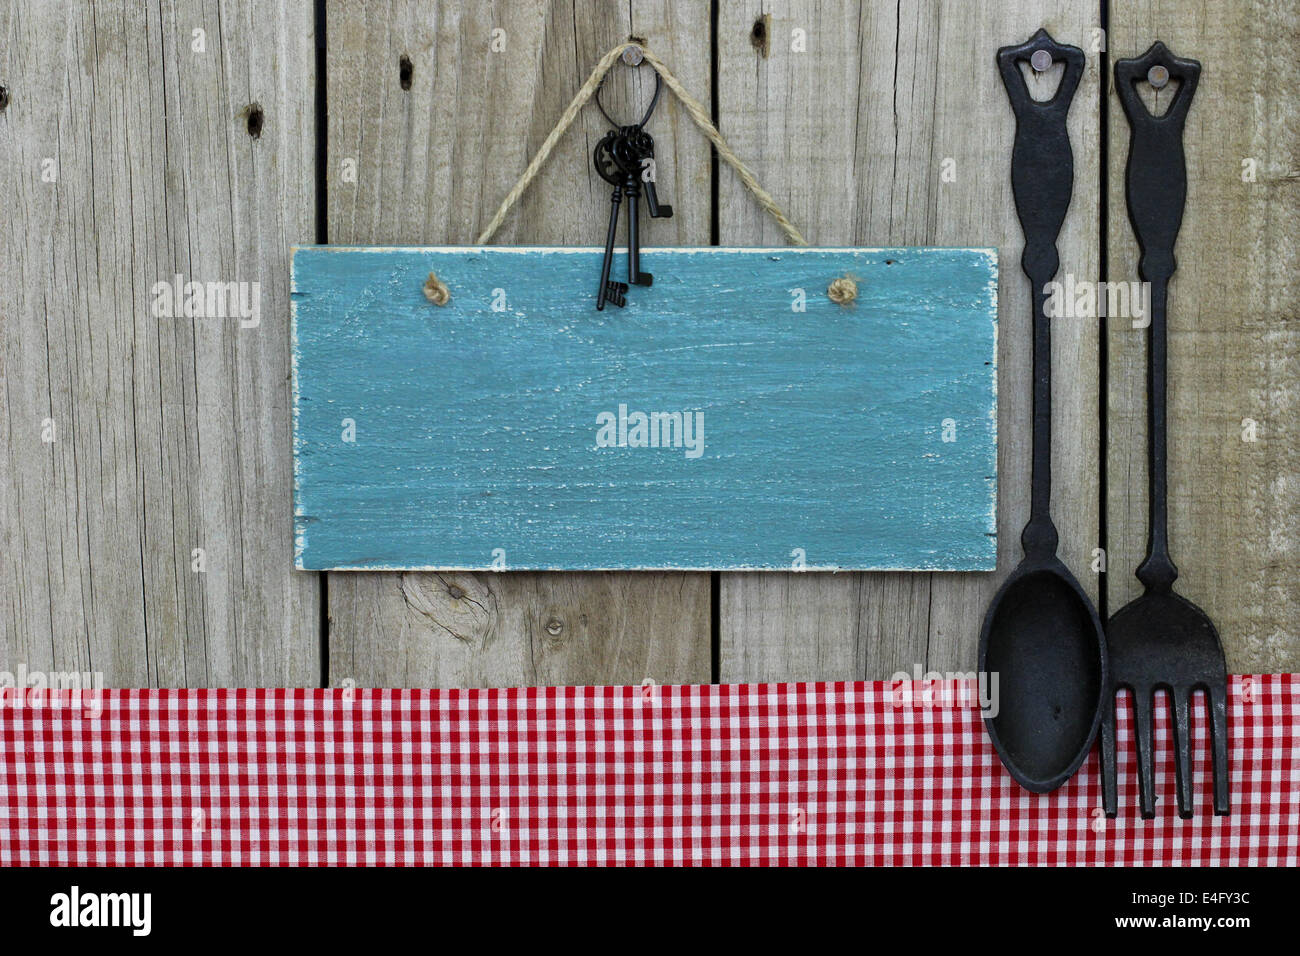 Blank antique blue sign with black iron keys hanging next to red checkered tablecloth and cast iron spoon and fork - Stock Image